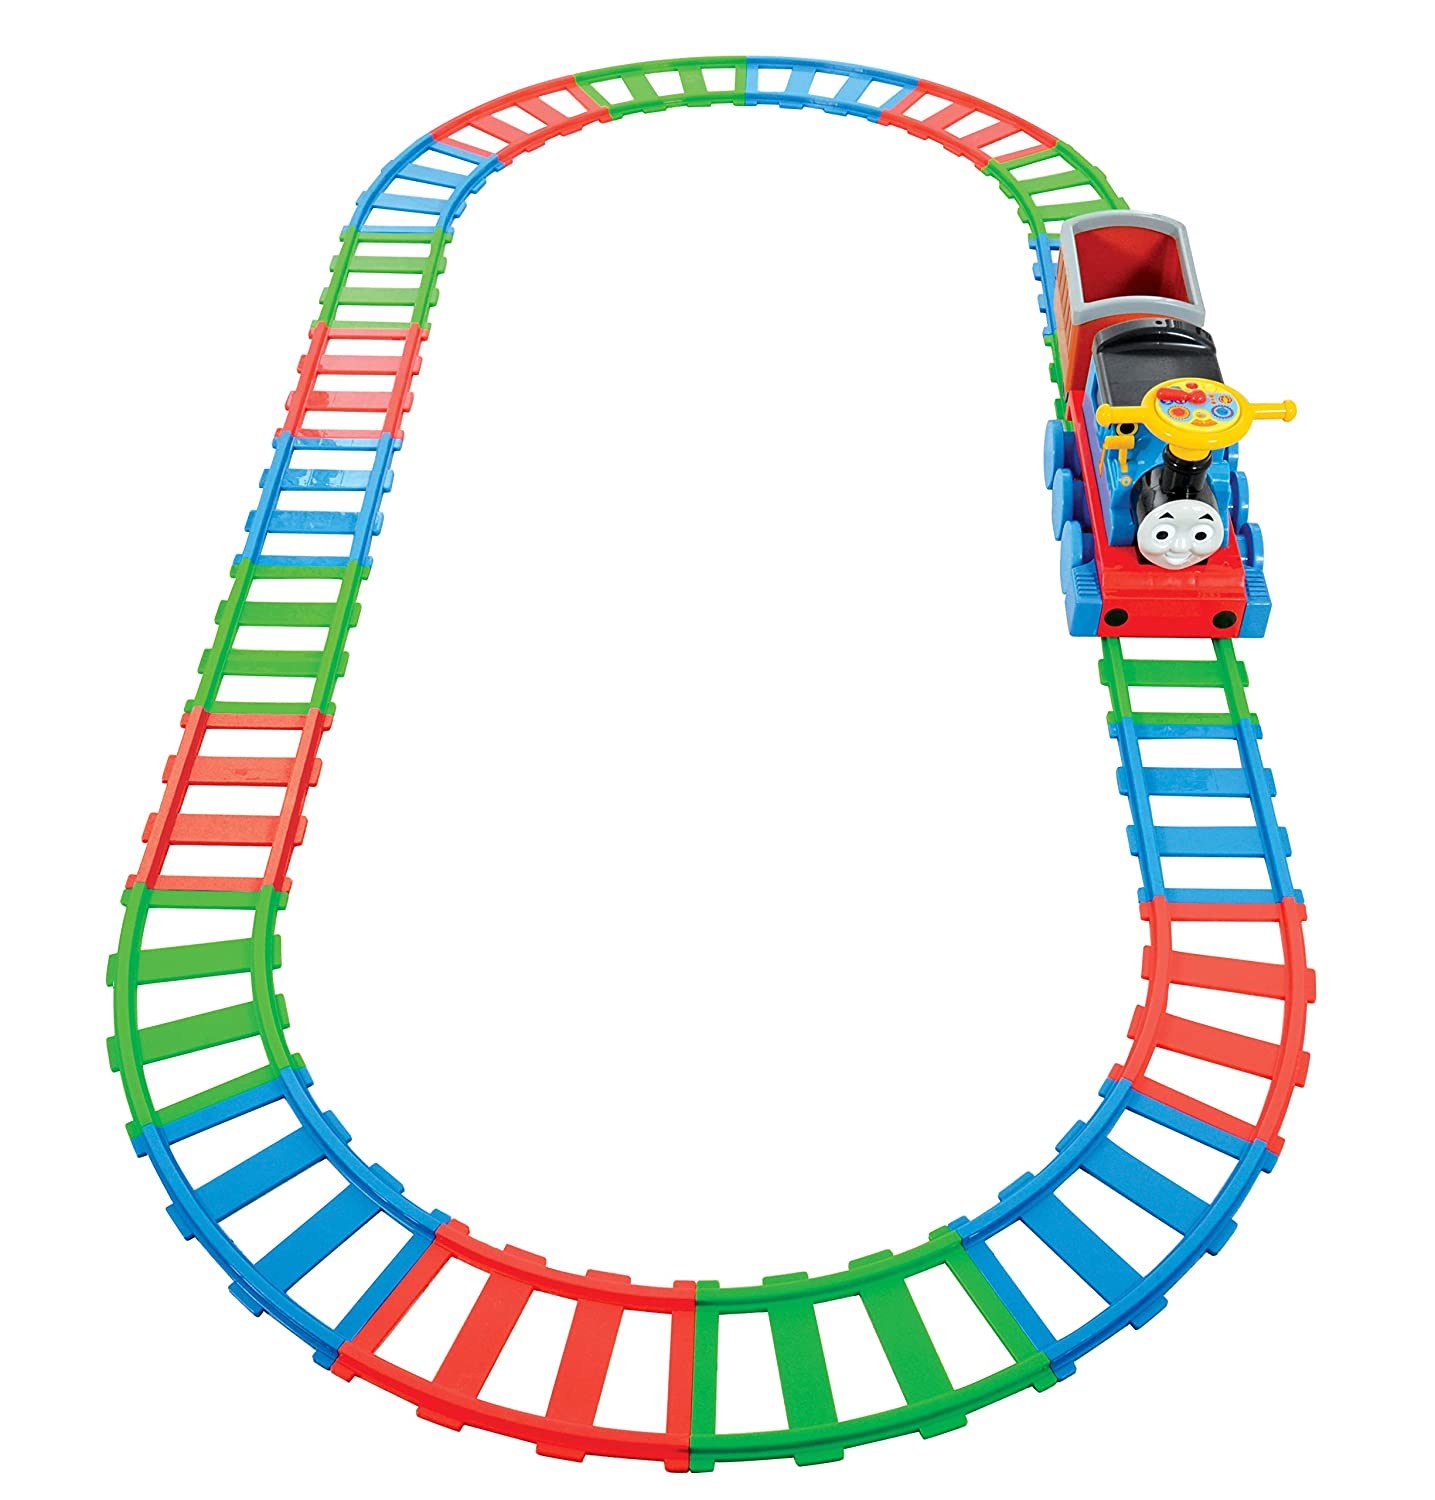 経典ブランド Thomas & Friends and Battery Operated & Train and 22 Track piece Track Set B002CGRY68, ナルセチョウ:29010421 --- test.ips.pl